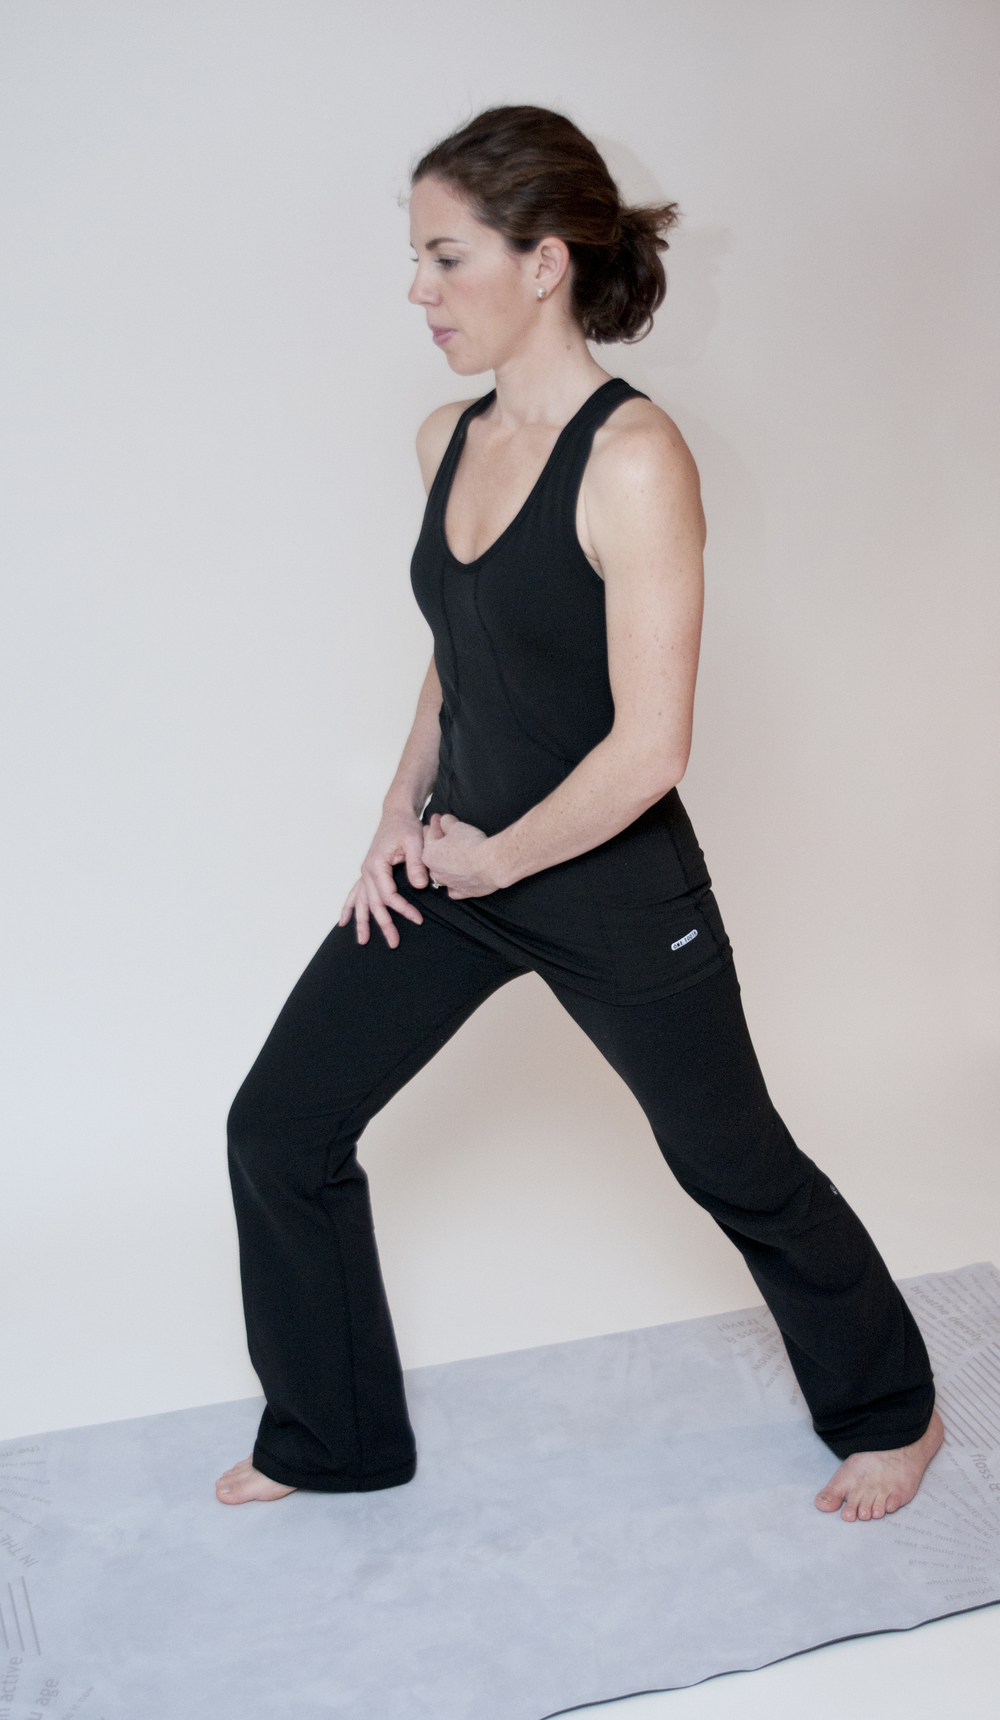 Standing(bent knee) calf stretch